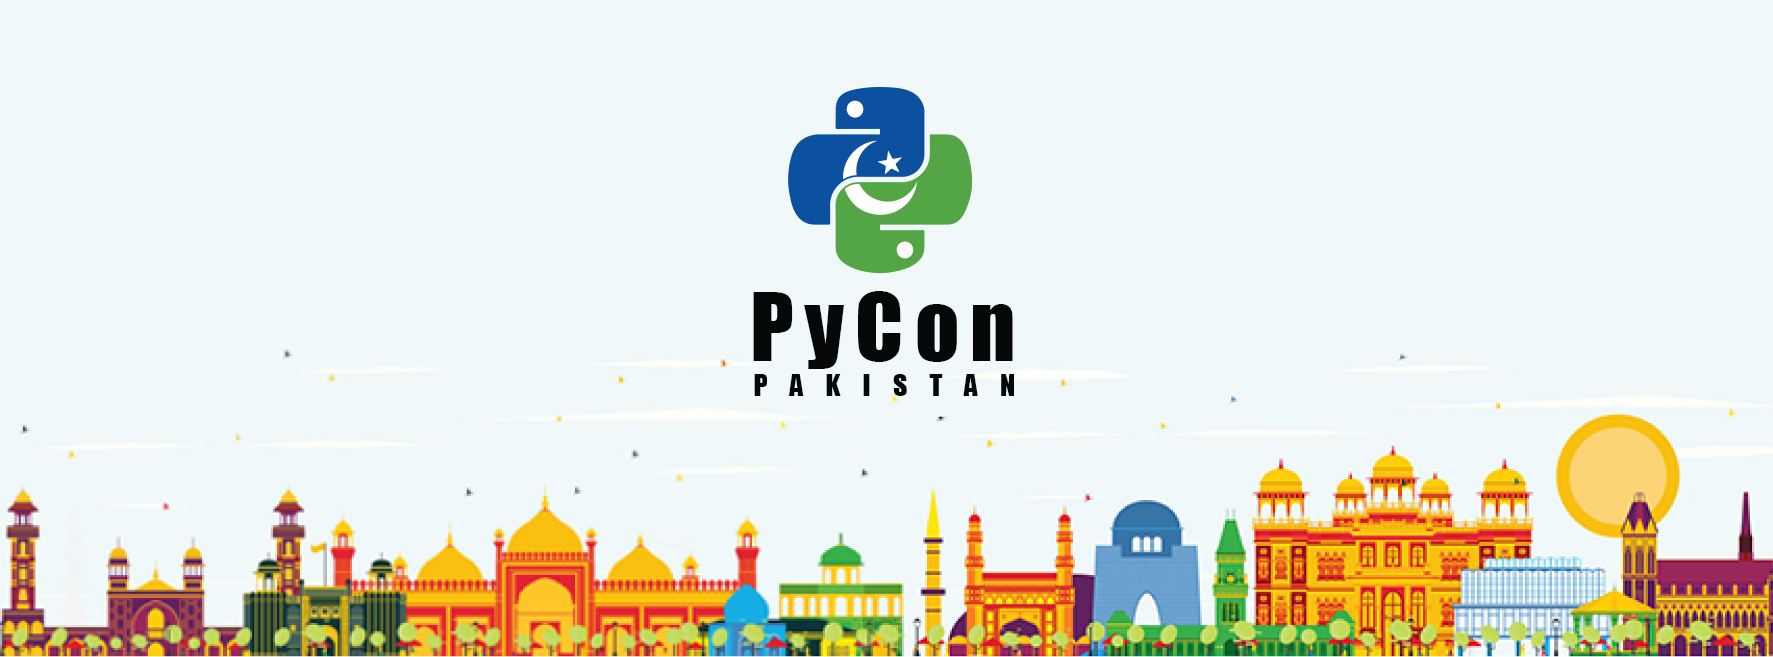 PyCon Pakistan is a community conference intended for networking and collaboration in the developer community